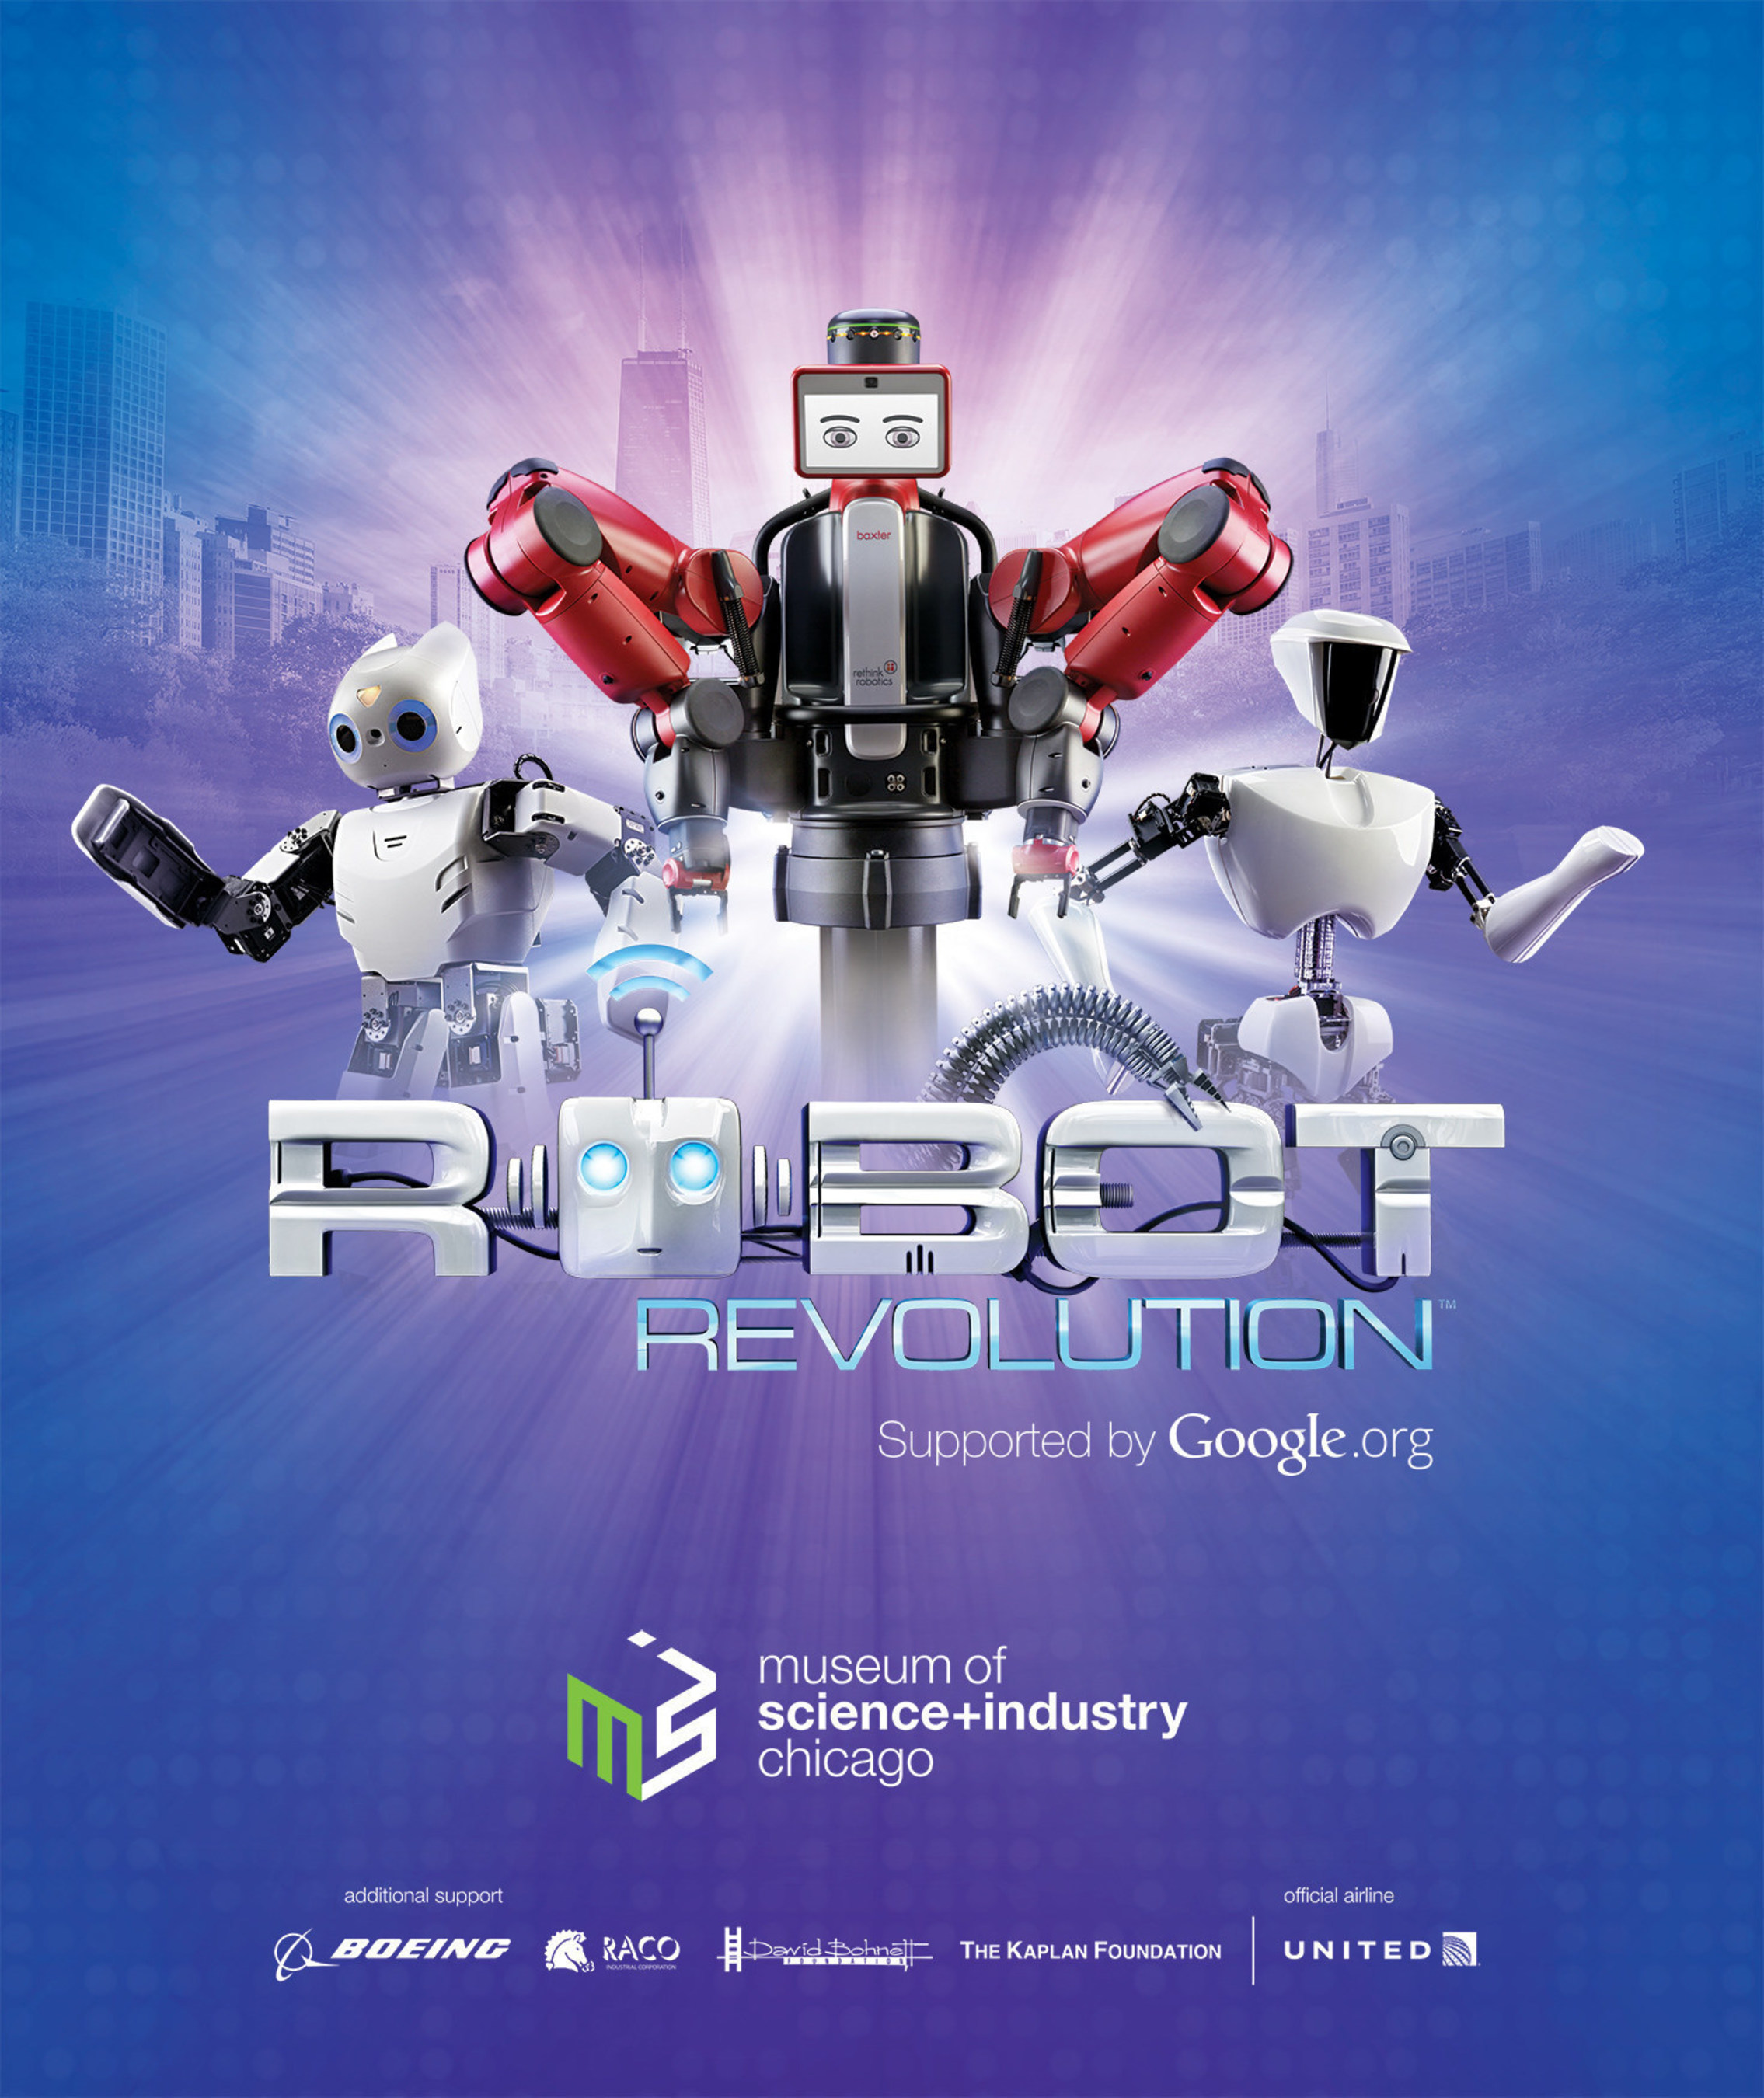 Major robotics exhibit, supported by Google.org, lets you explore, play with and learn from cutting-edge robots from around the world.